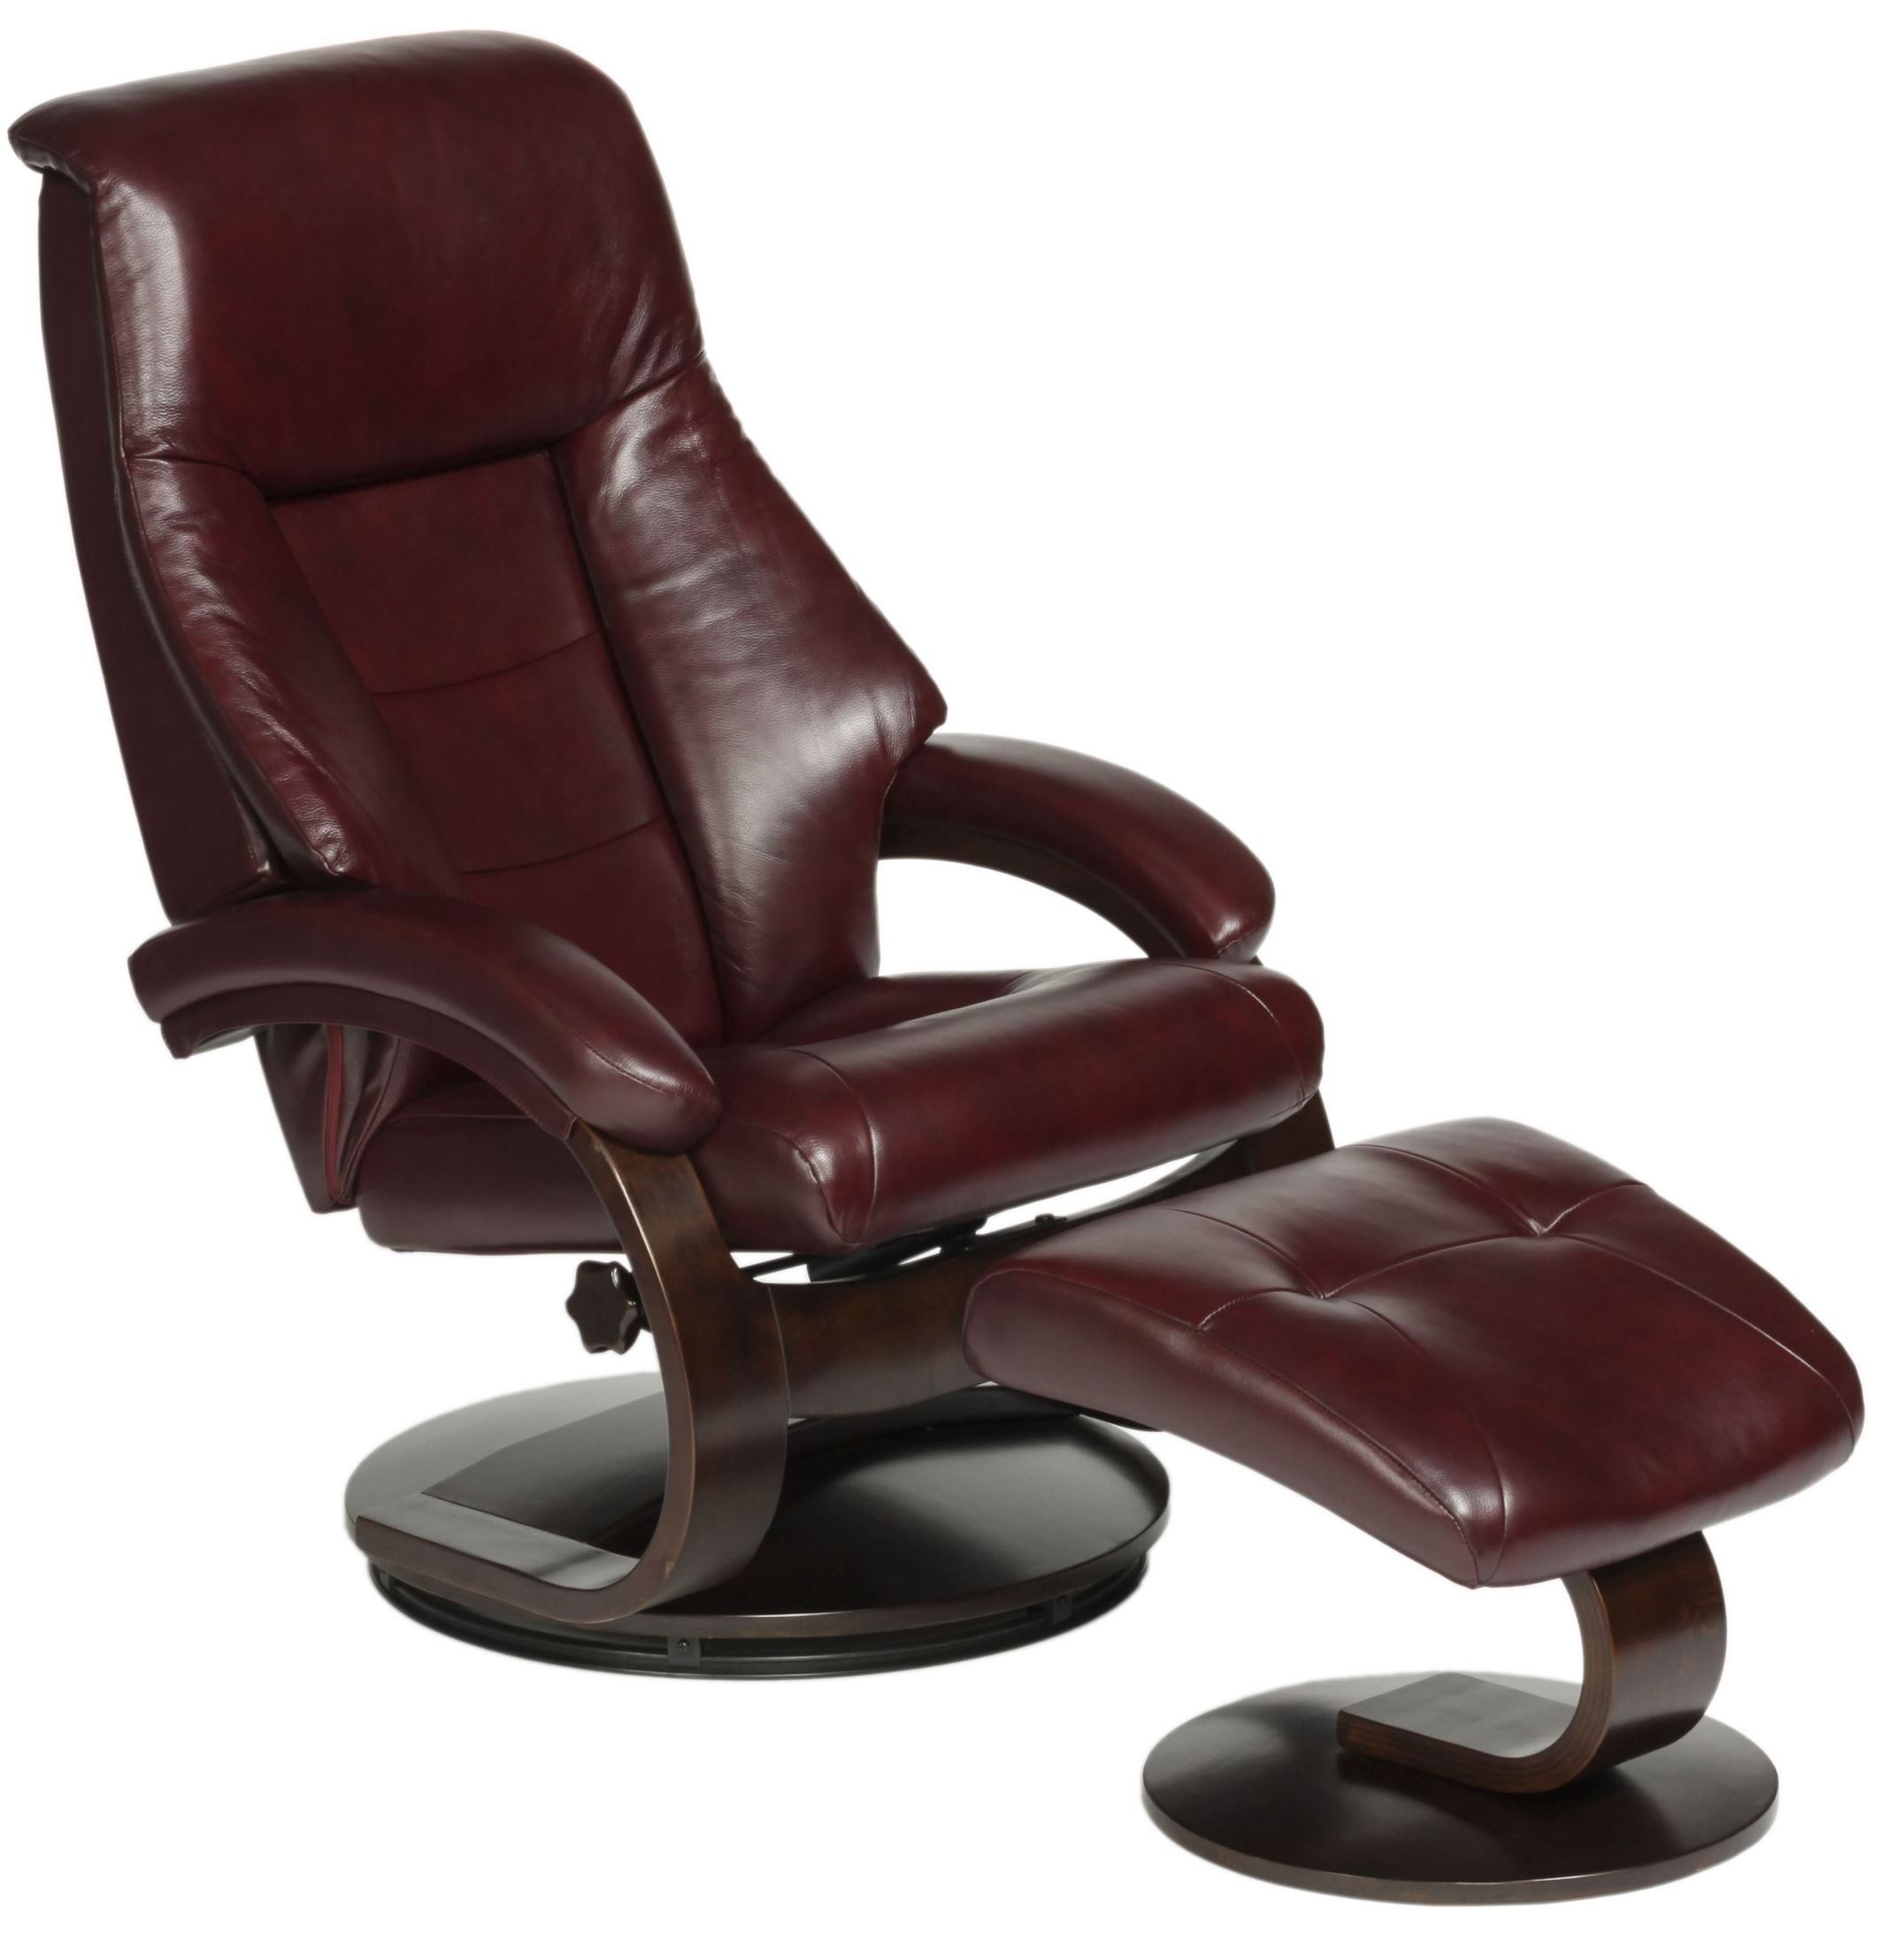 Best Leather Chairs Oslo Merlot Burgundy Top Grain Leather Swivel Recliner